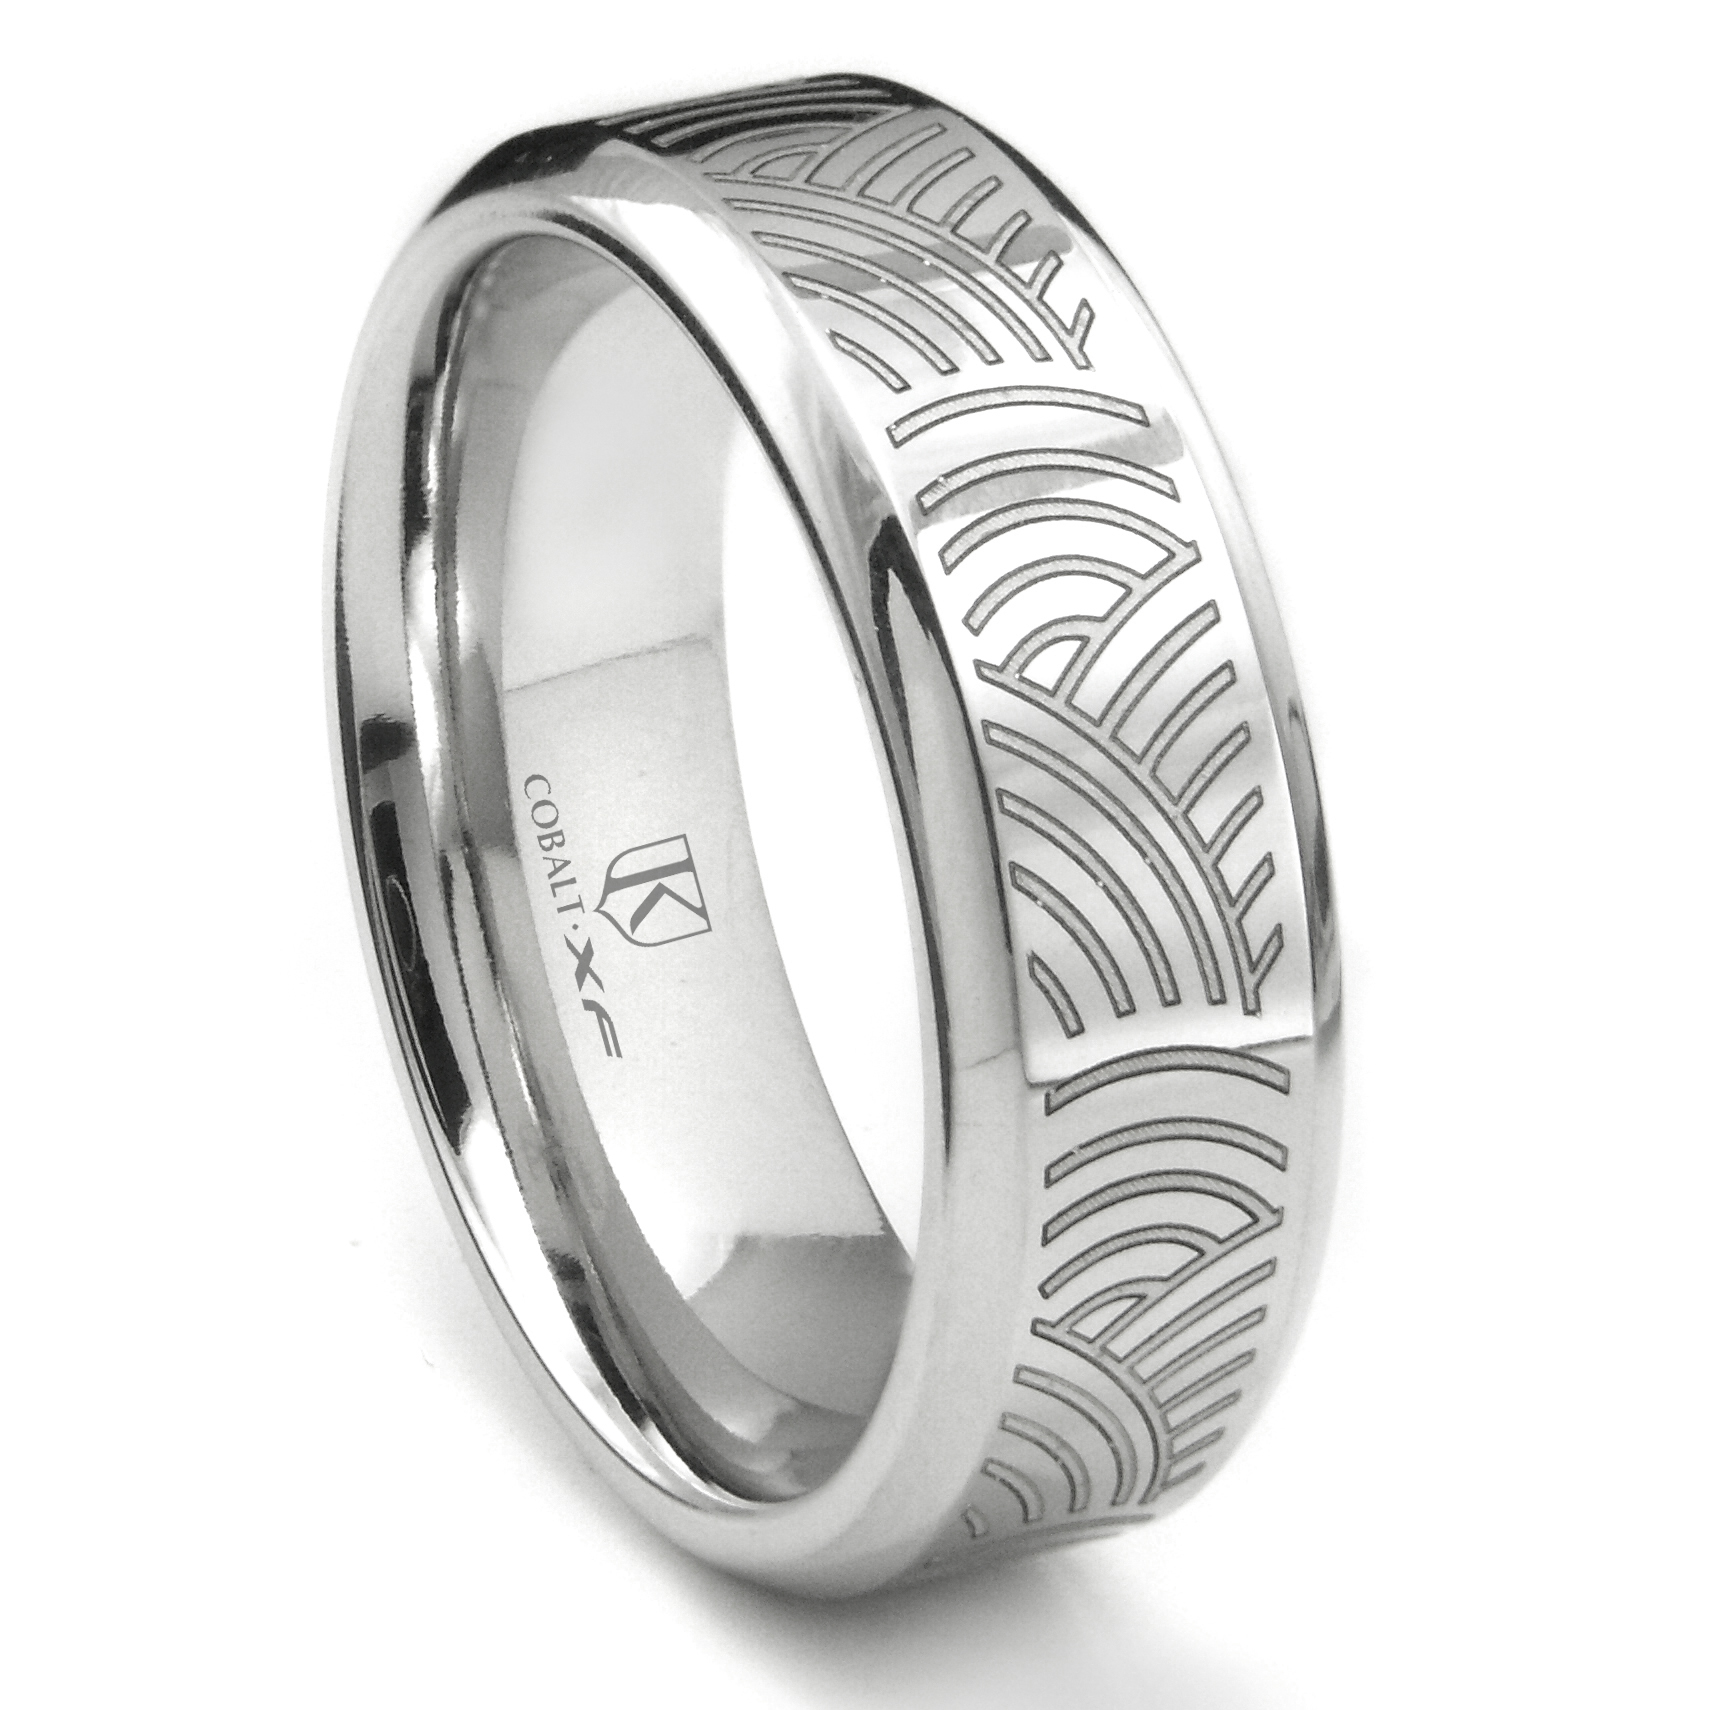 wedding simple rings jewelry engraved style jabel view customized vintage hand fine product top